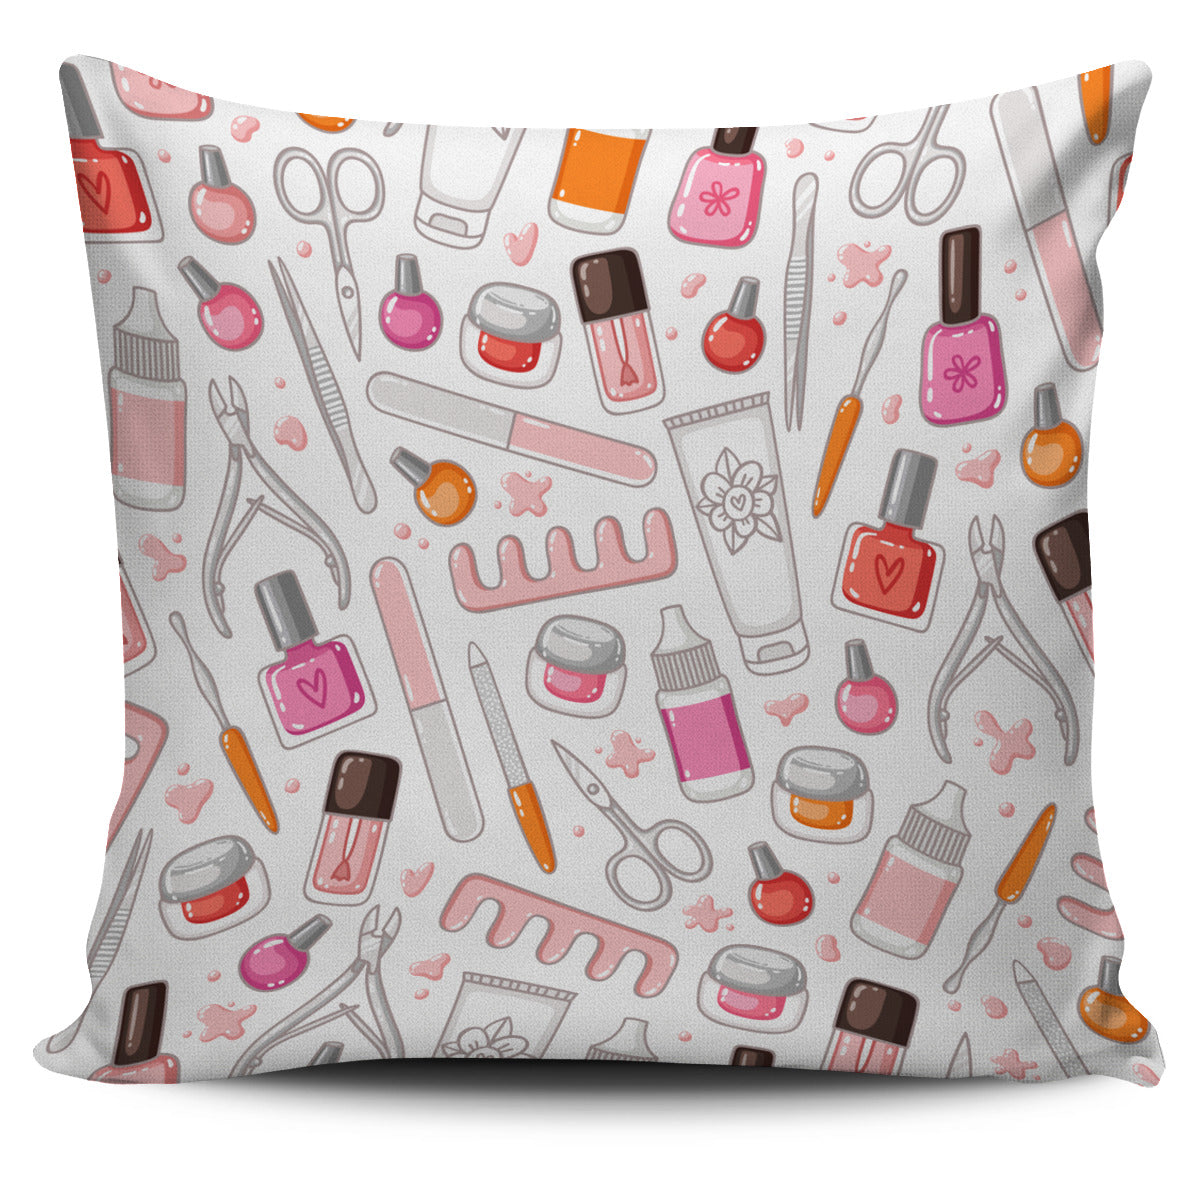 Nail Tools Pillow Cover